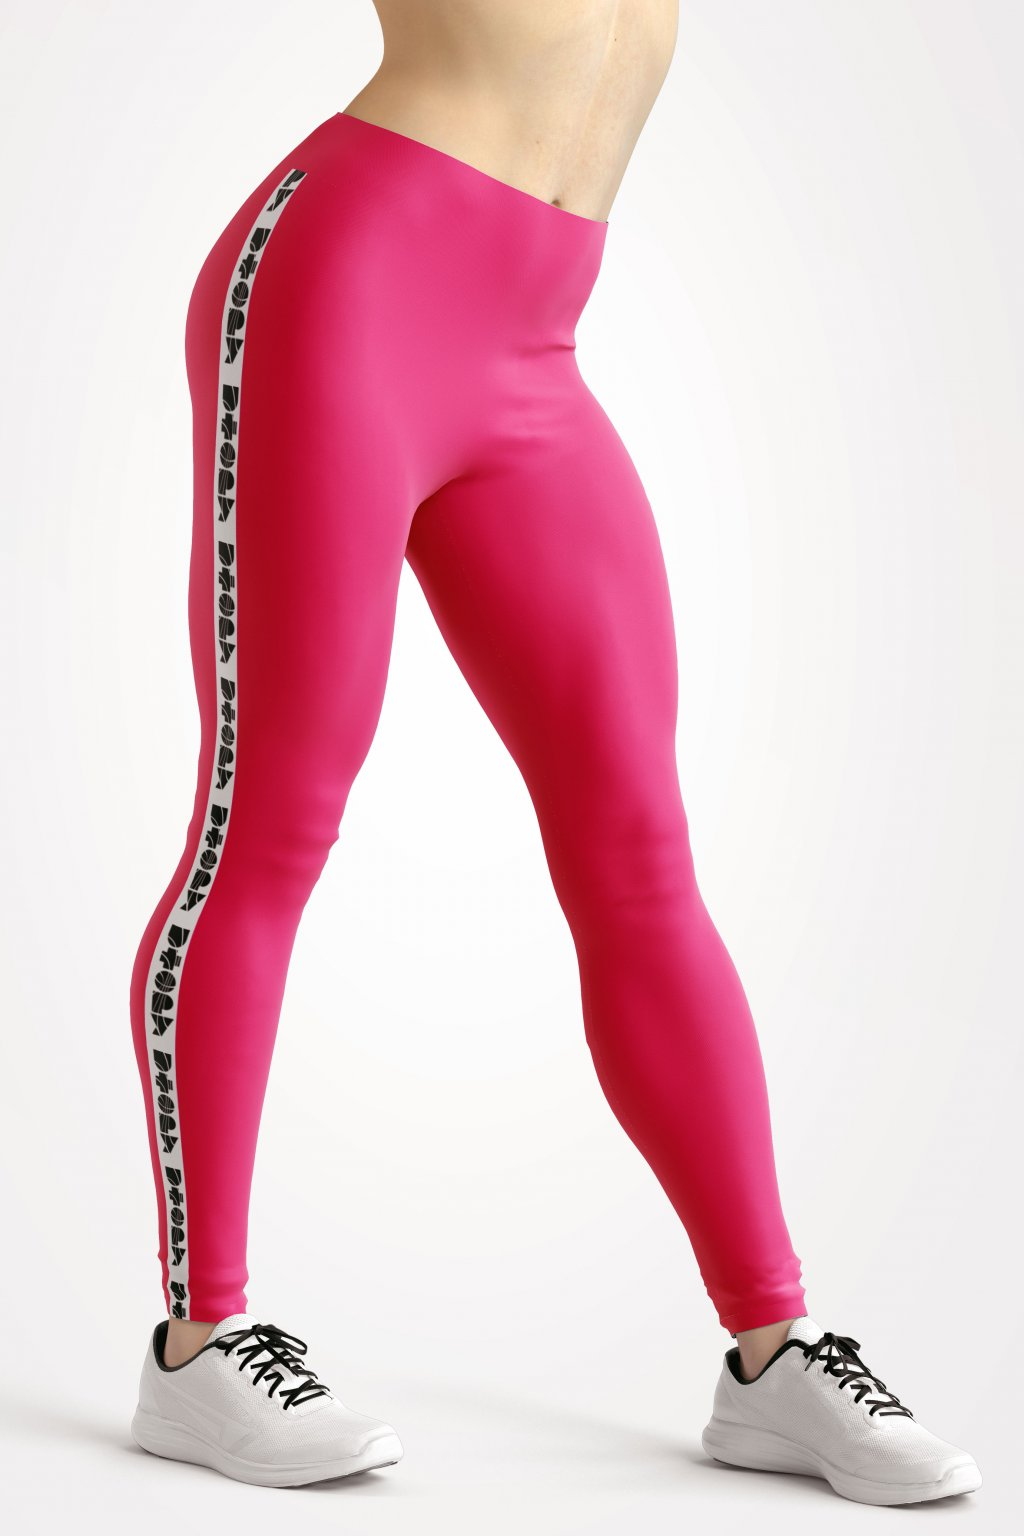 basic collection pink utopy leggings front by utopy v2